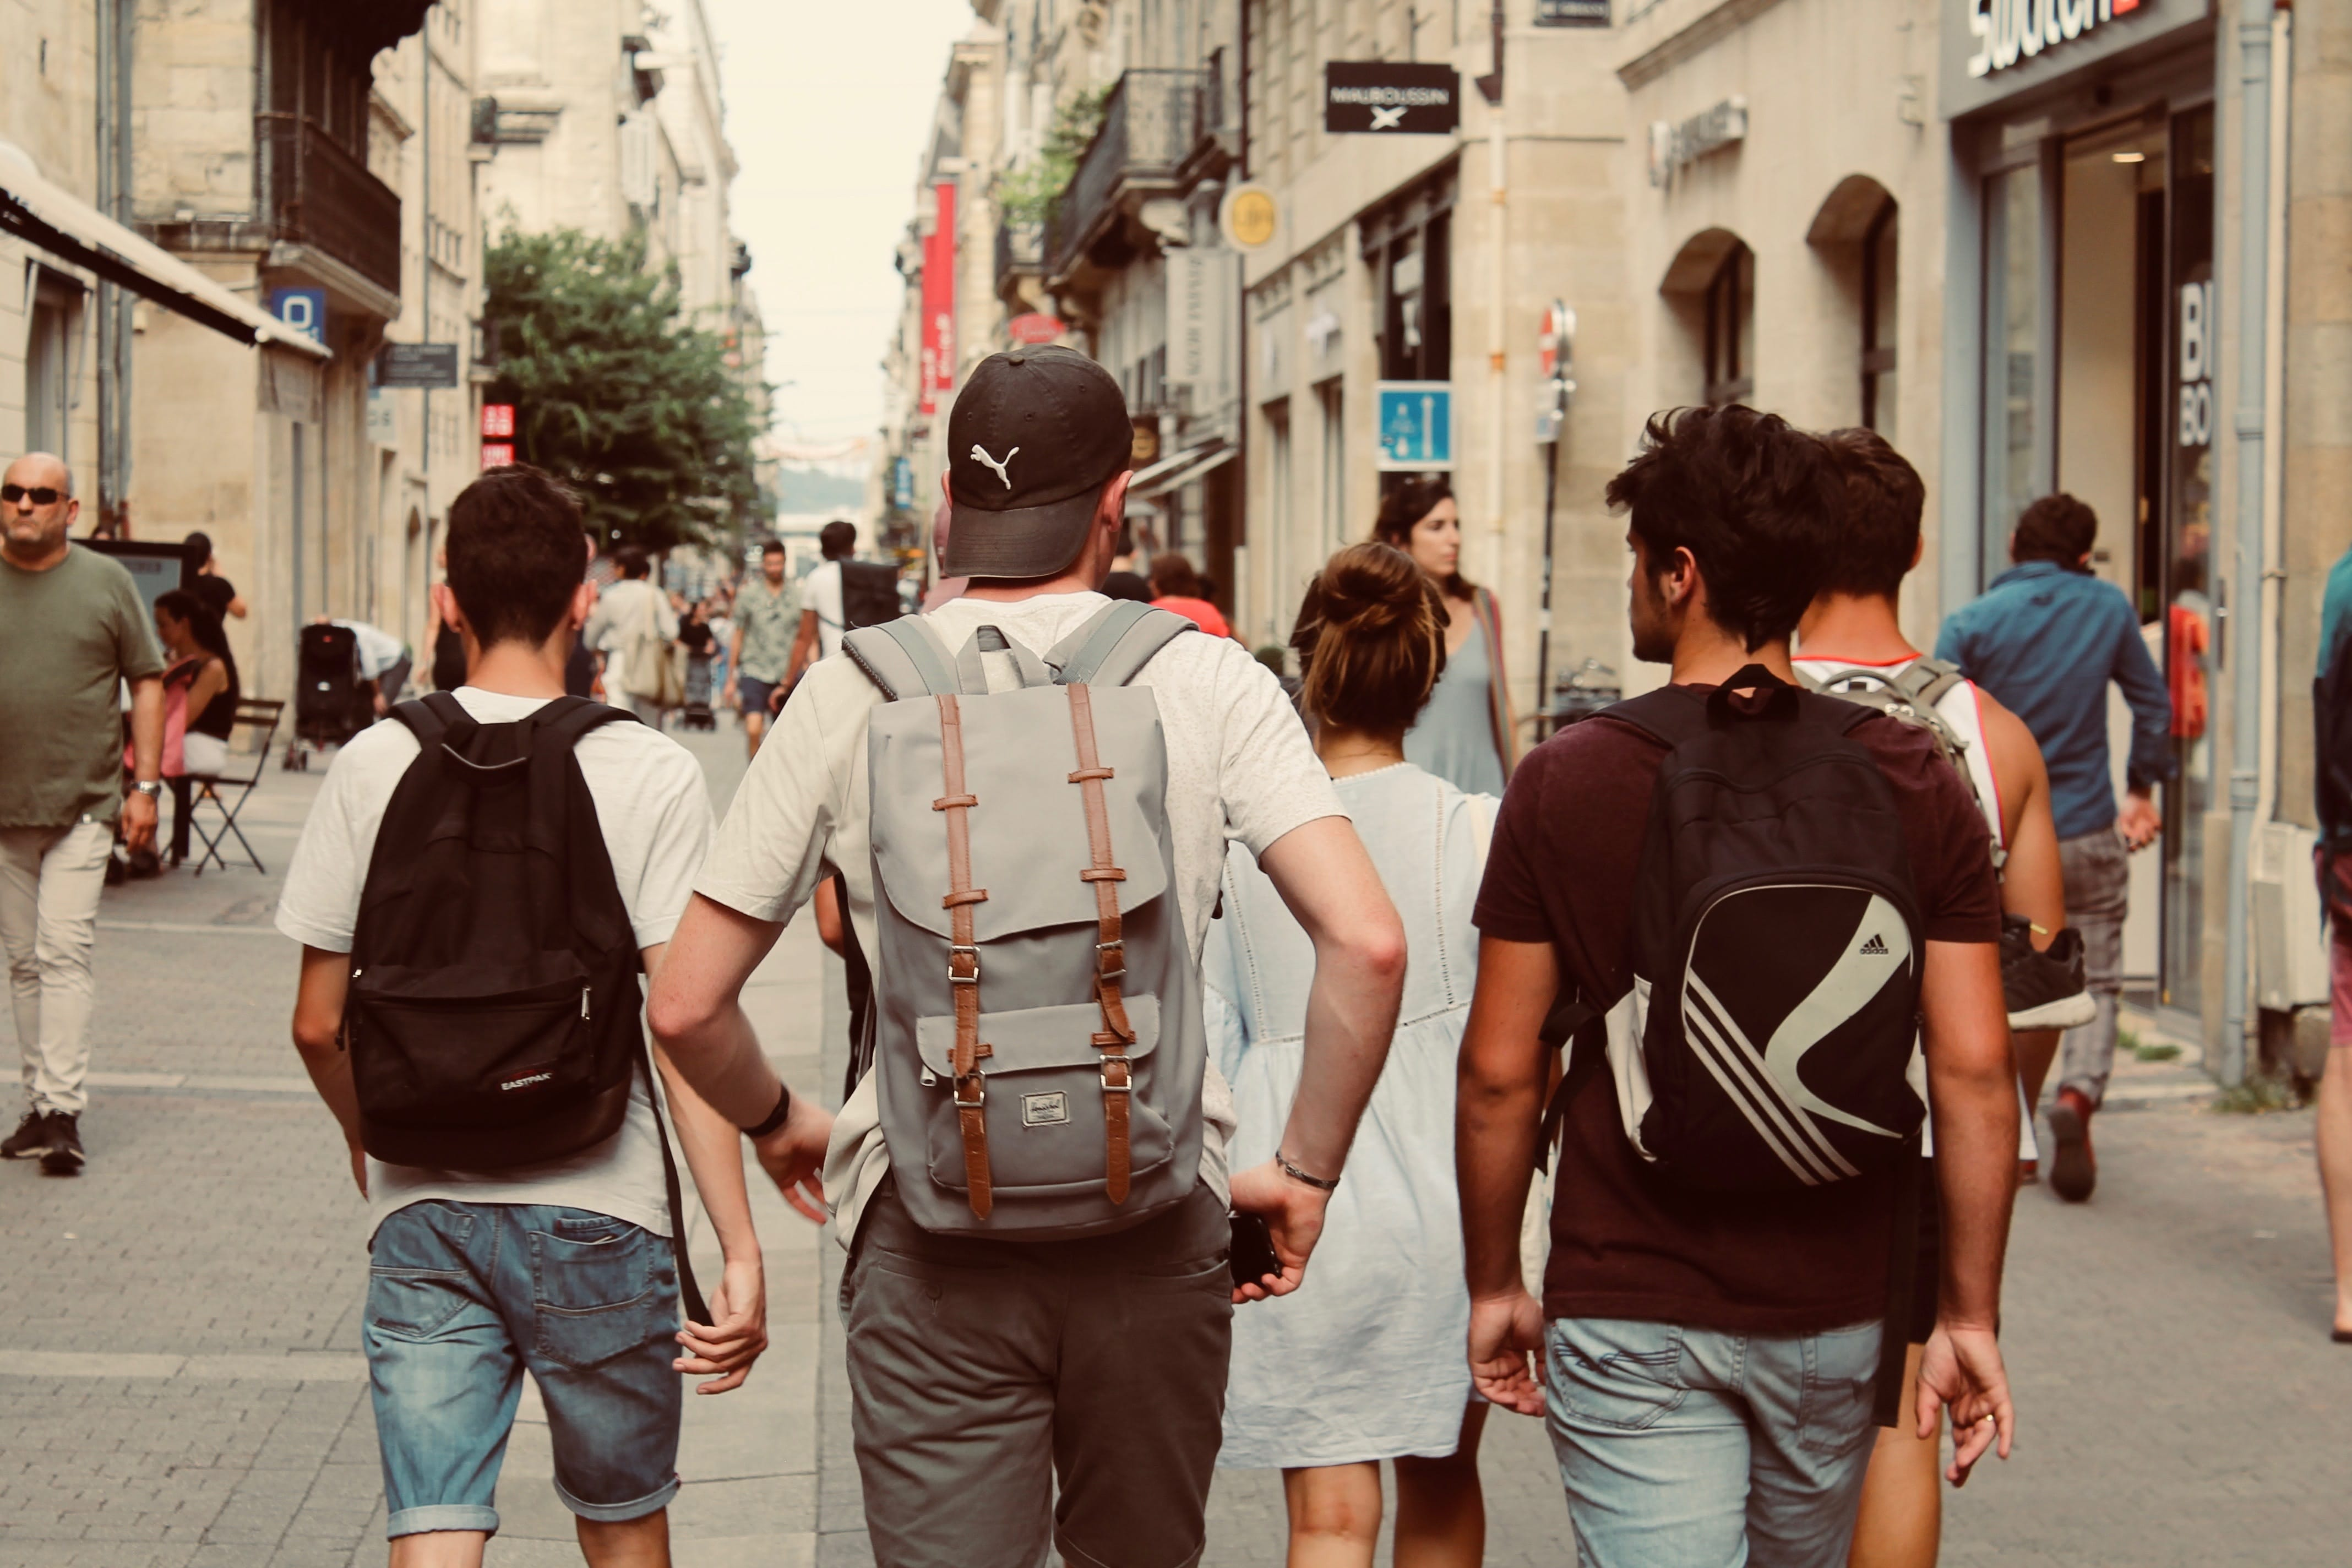 Group of teenagers wearing backpacks walking away from camera; image by Rich Smith, via Unsplash.com.